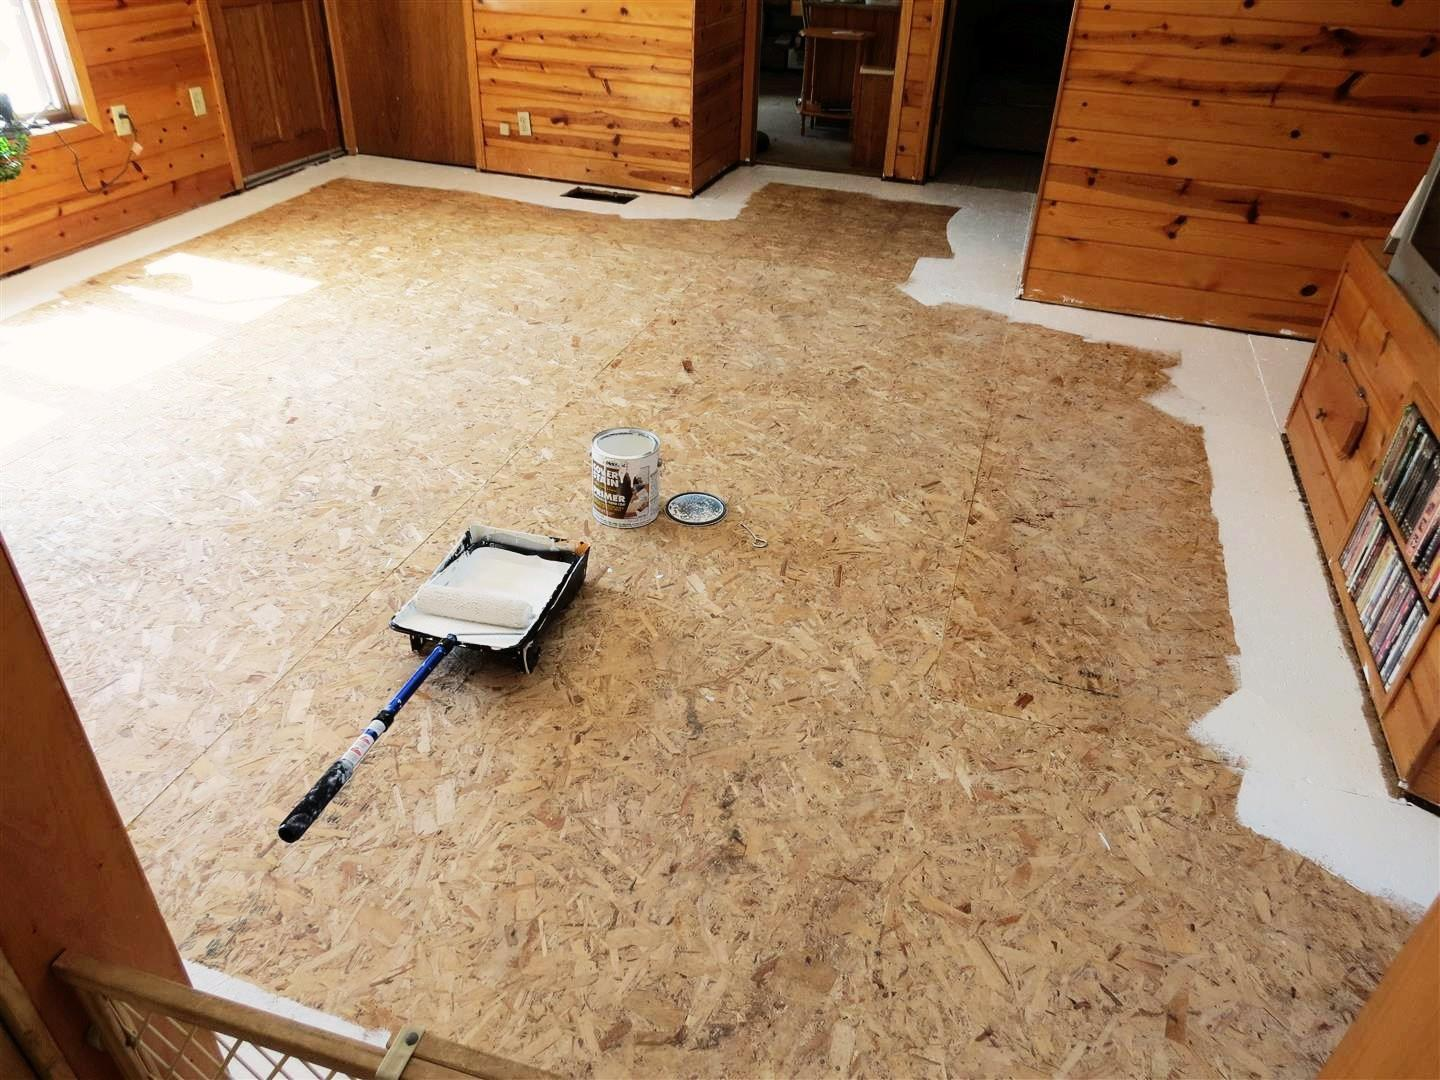 Black Spruce Hound Painted Plywood Floors Revisited